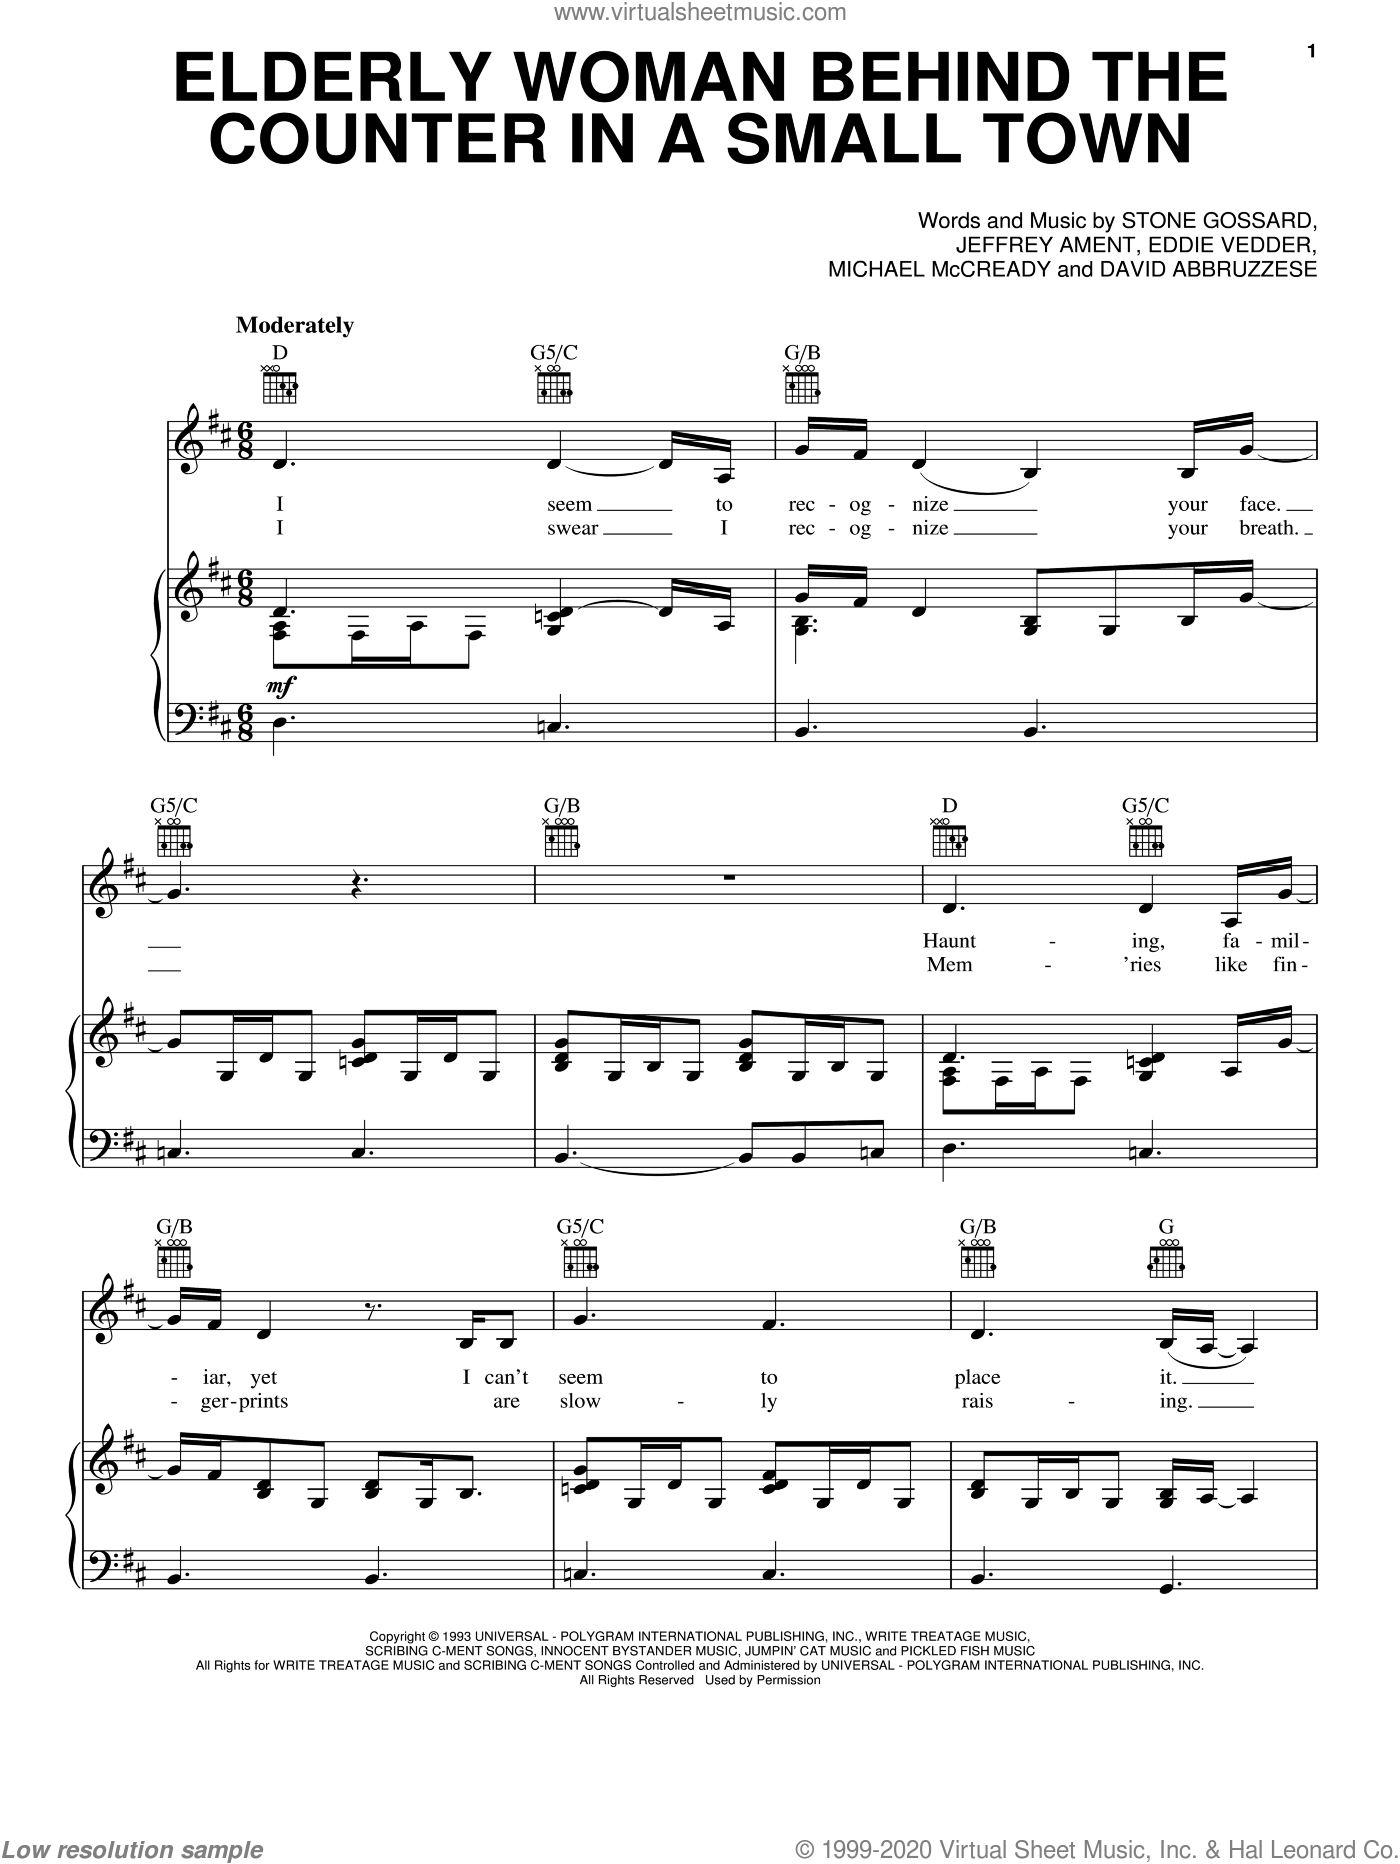 Elderly Woman Behind The Counter In A Small Town sheet music for voice, piano or guitar by Pearl Jam, David Abbruzzese, Eddie Vedder, Jeffrey Ament, Michael McCready and Stone Gossard, intermediate skill level